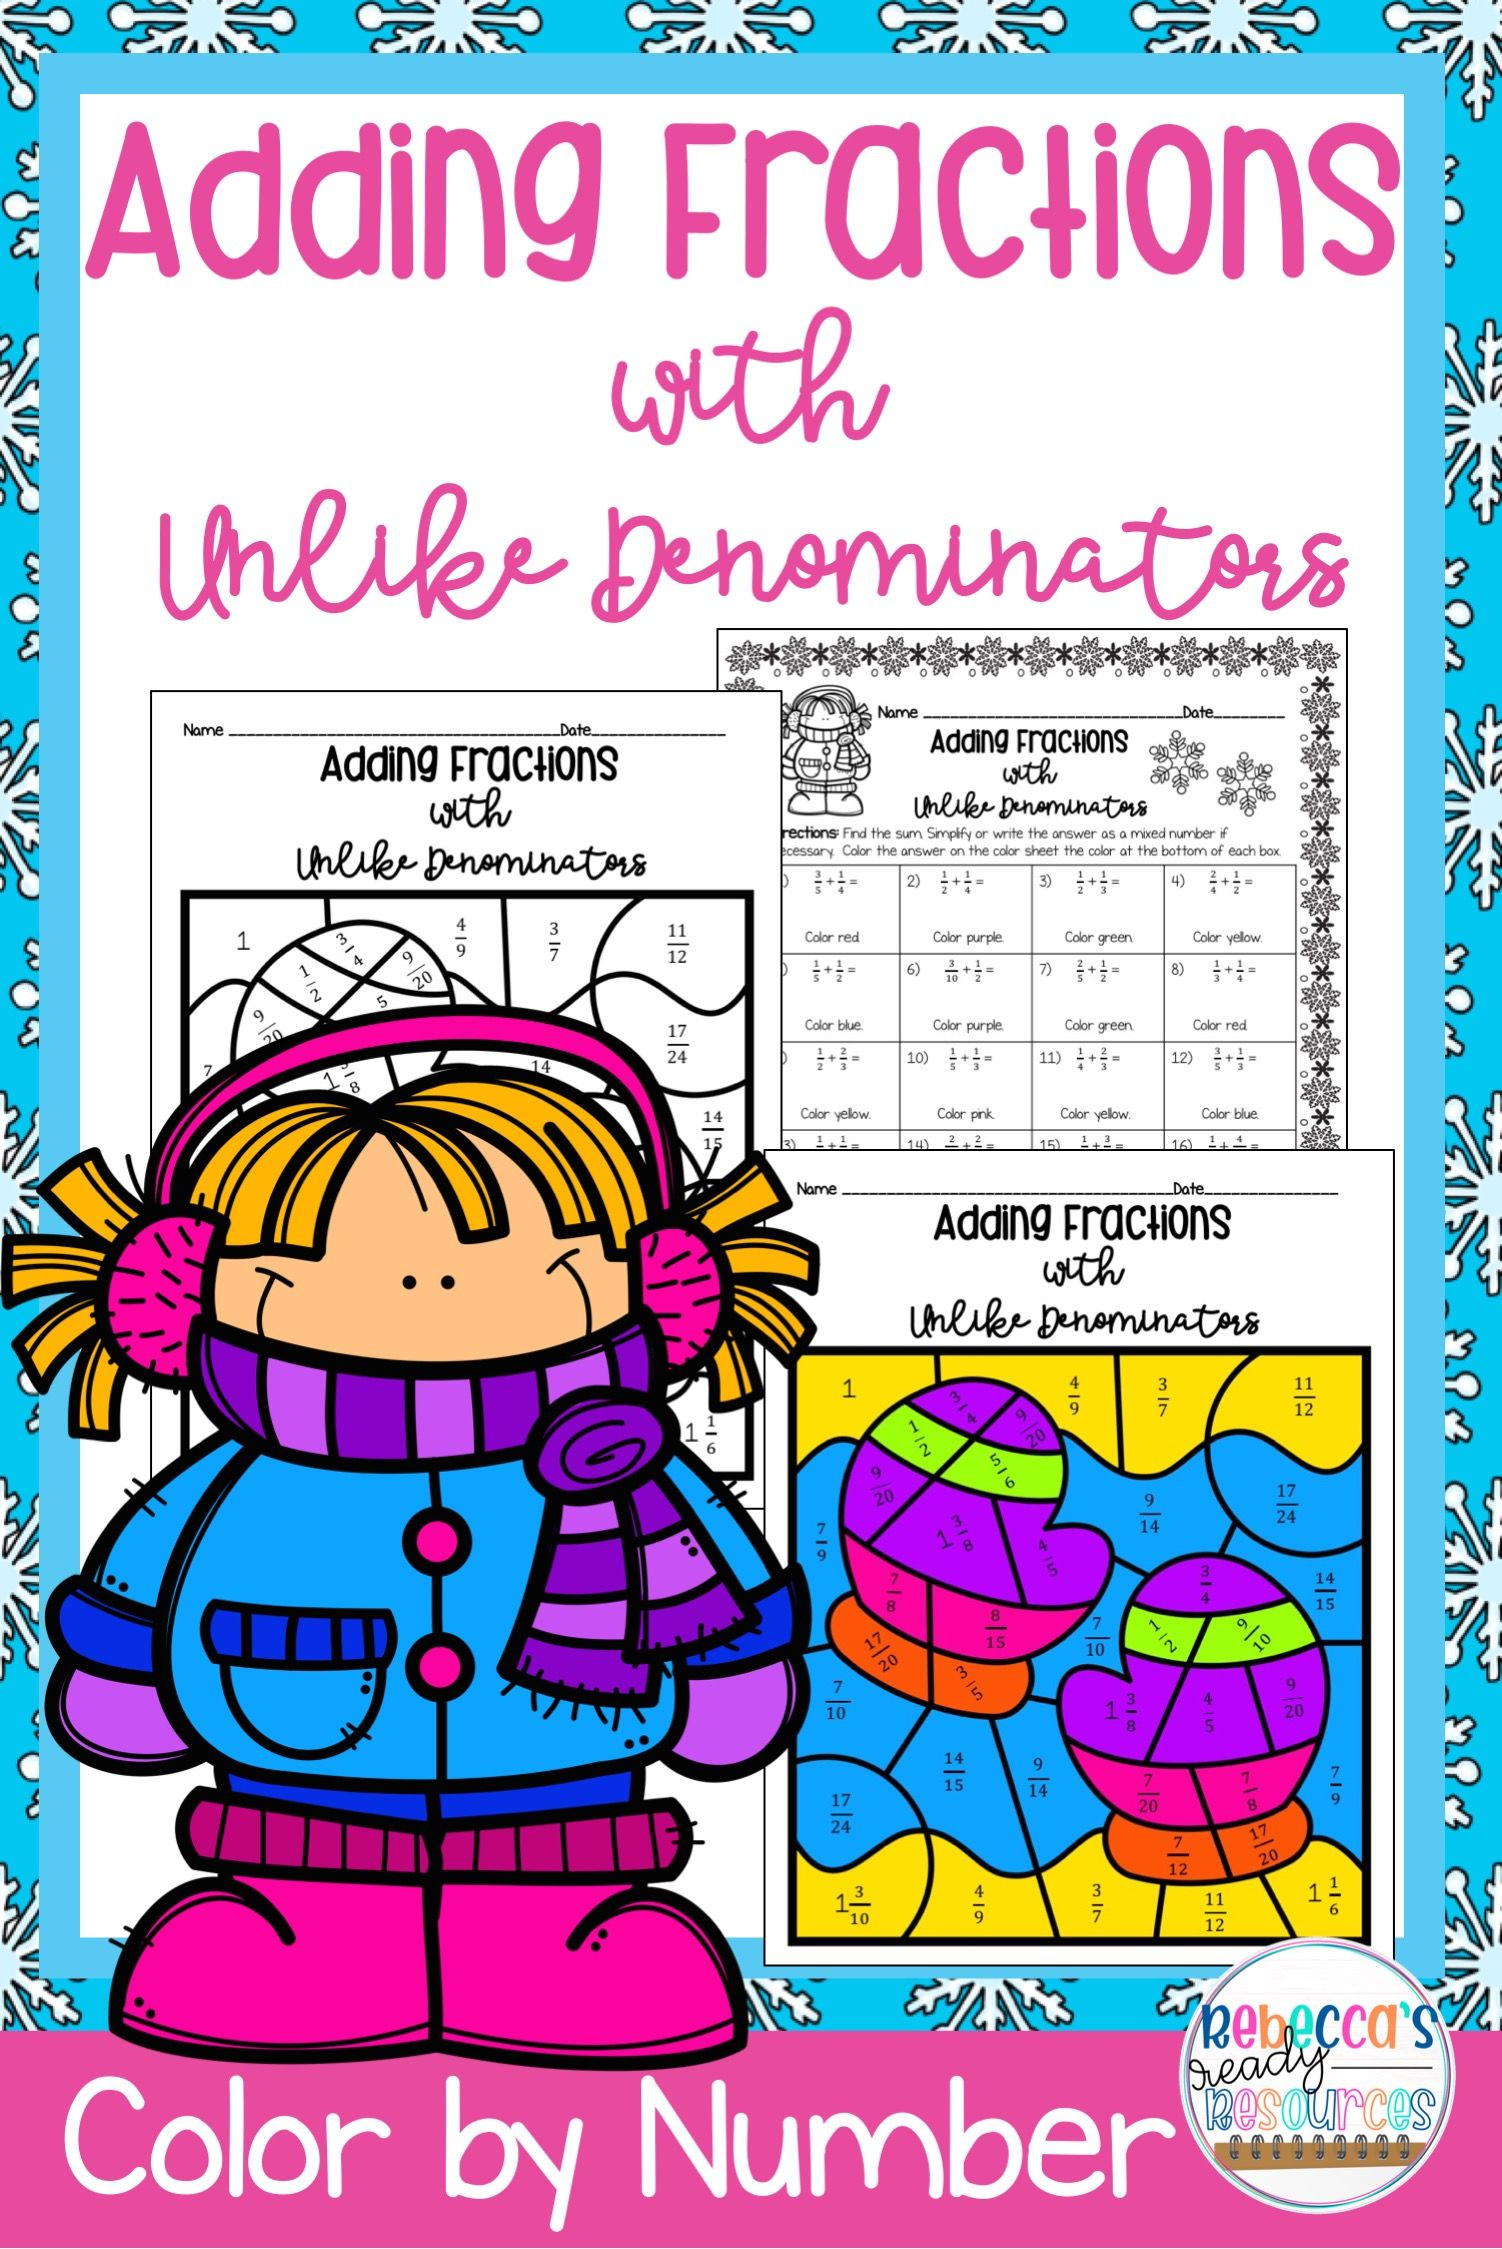 Adding Fractions With Unlike Denominators Color By Number